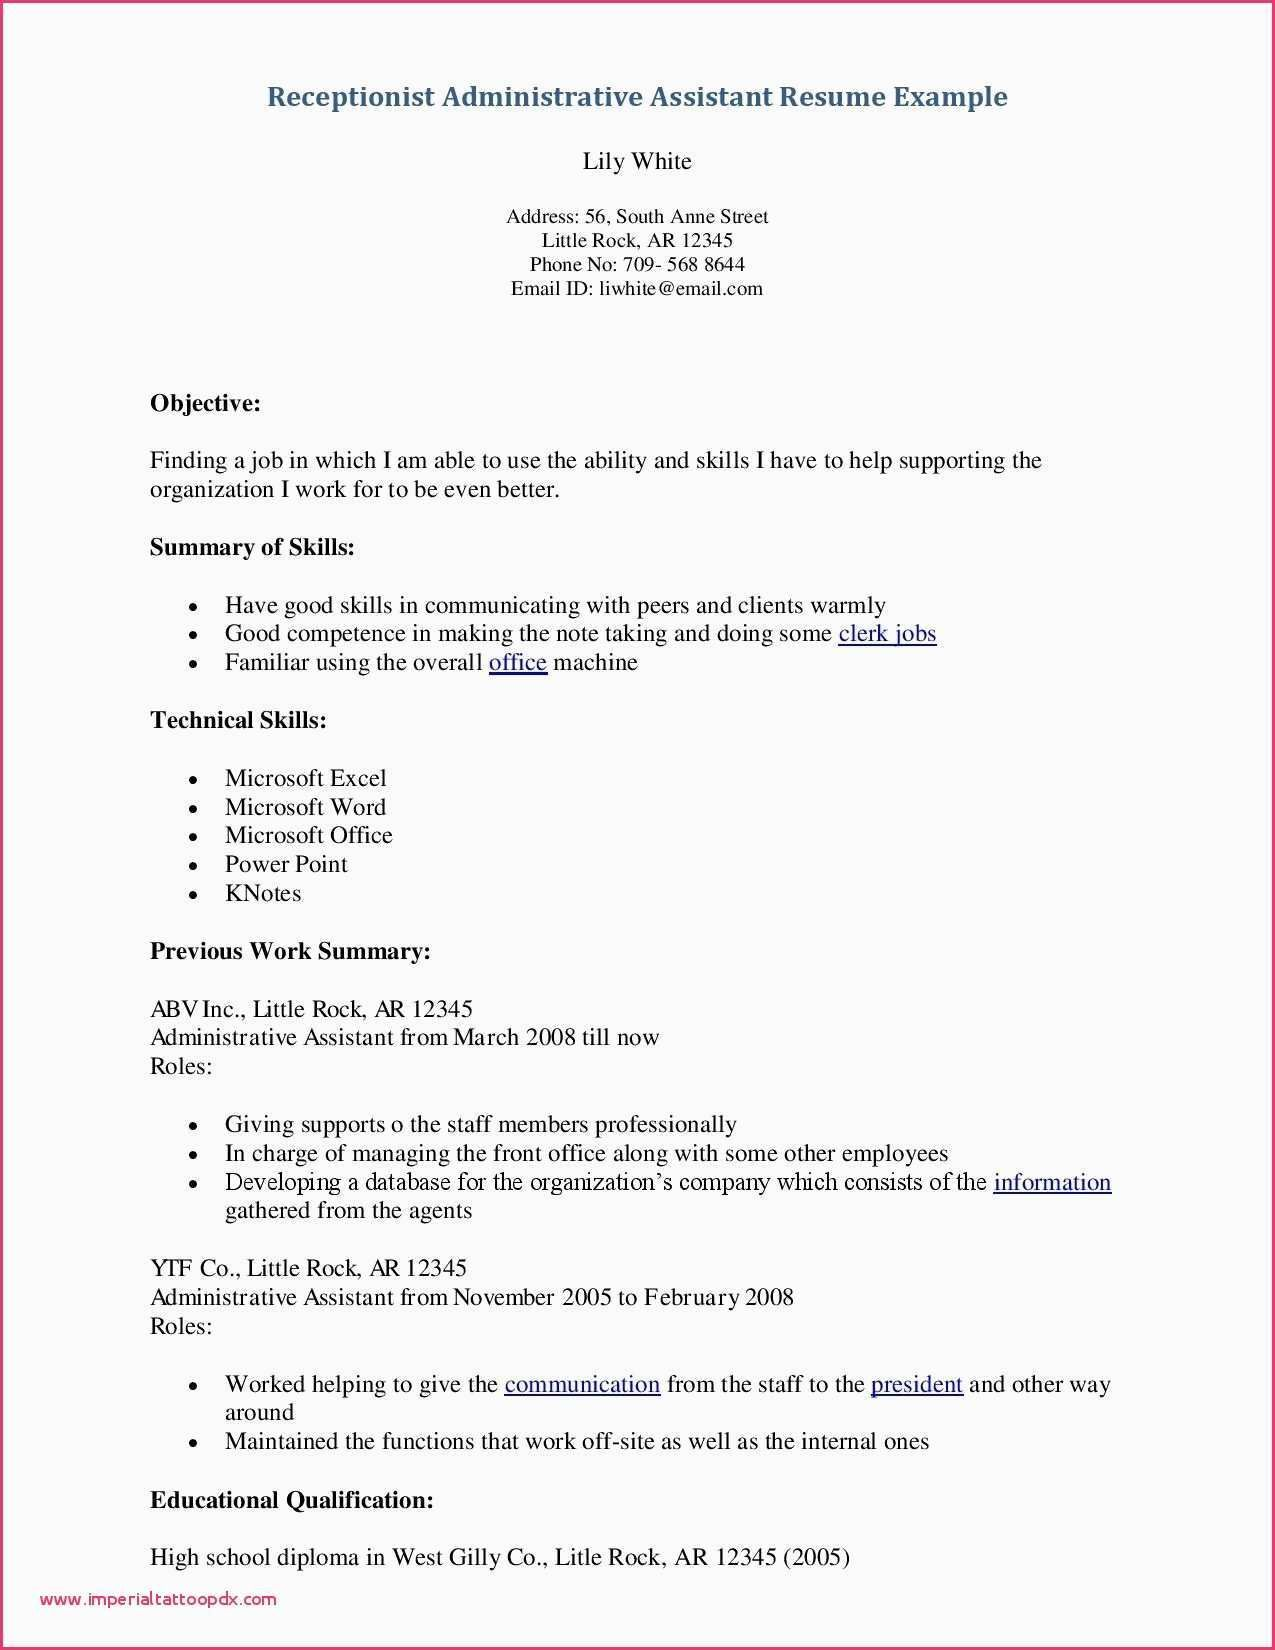 Resume Objective Template 74 Cool Photos Of Resume Objective Examples For Healthcare